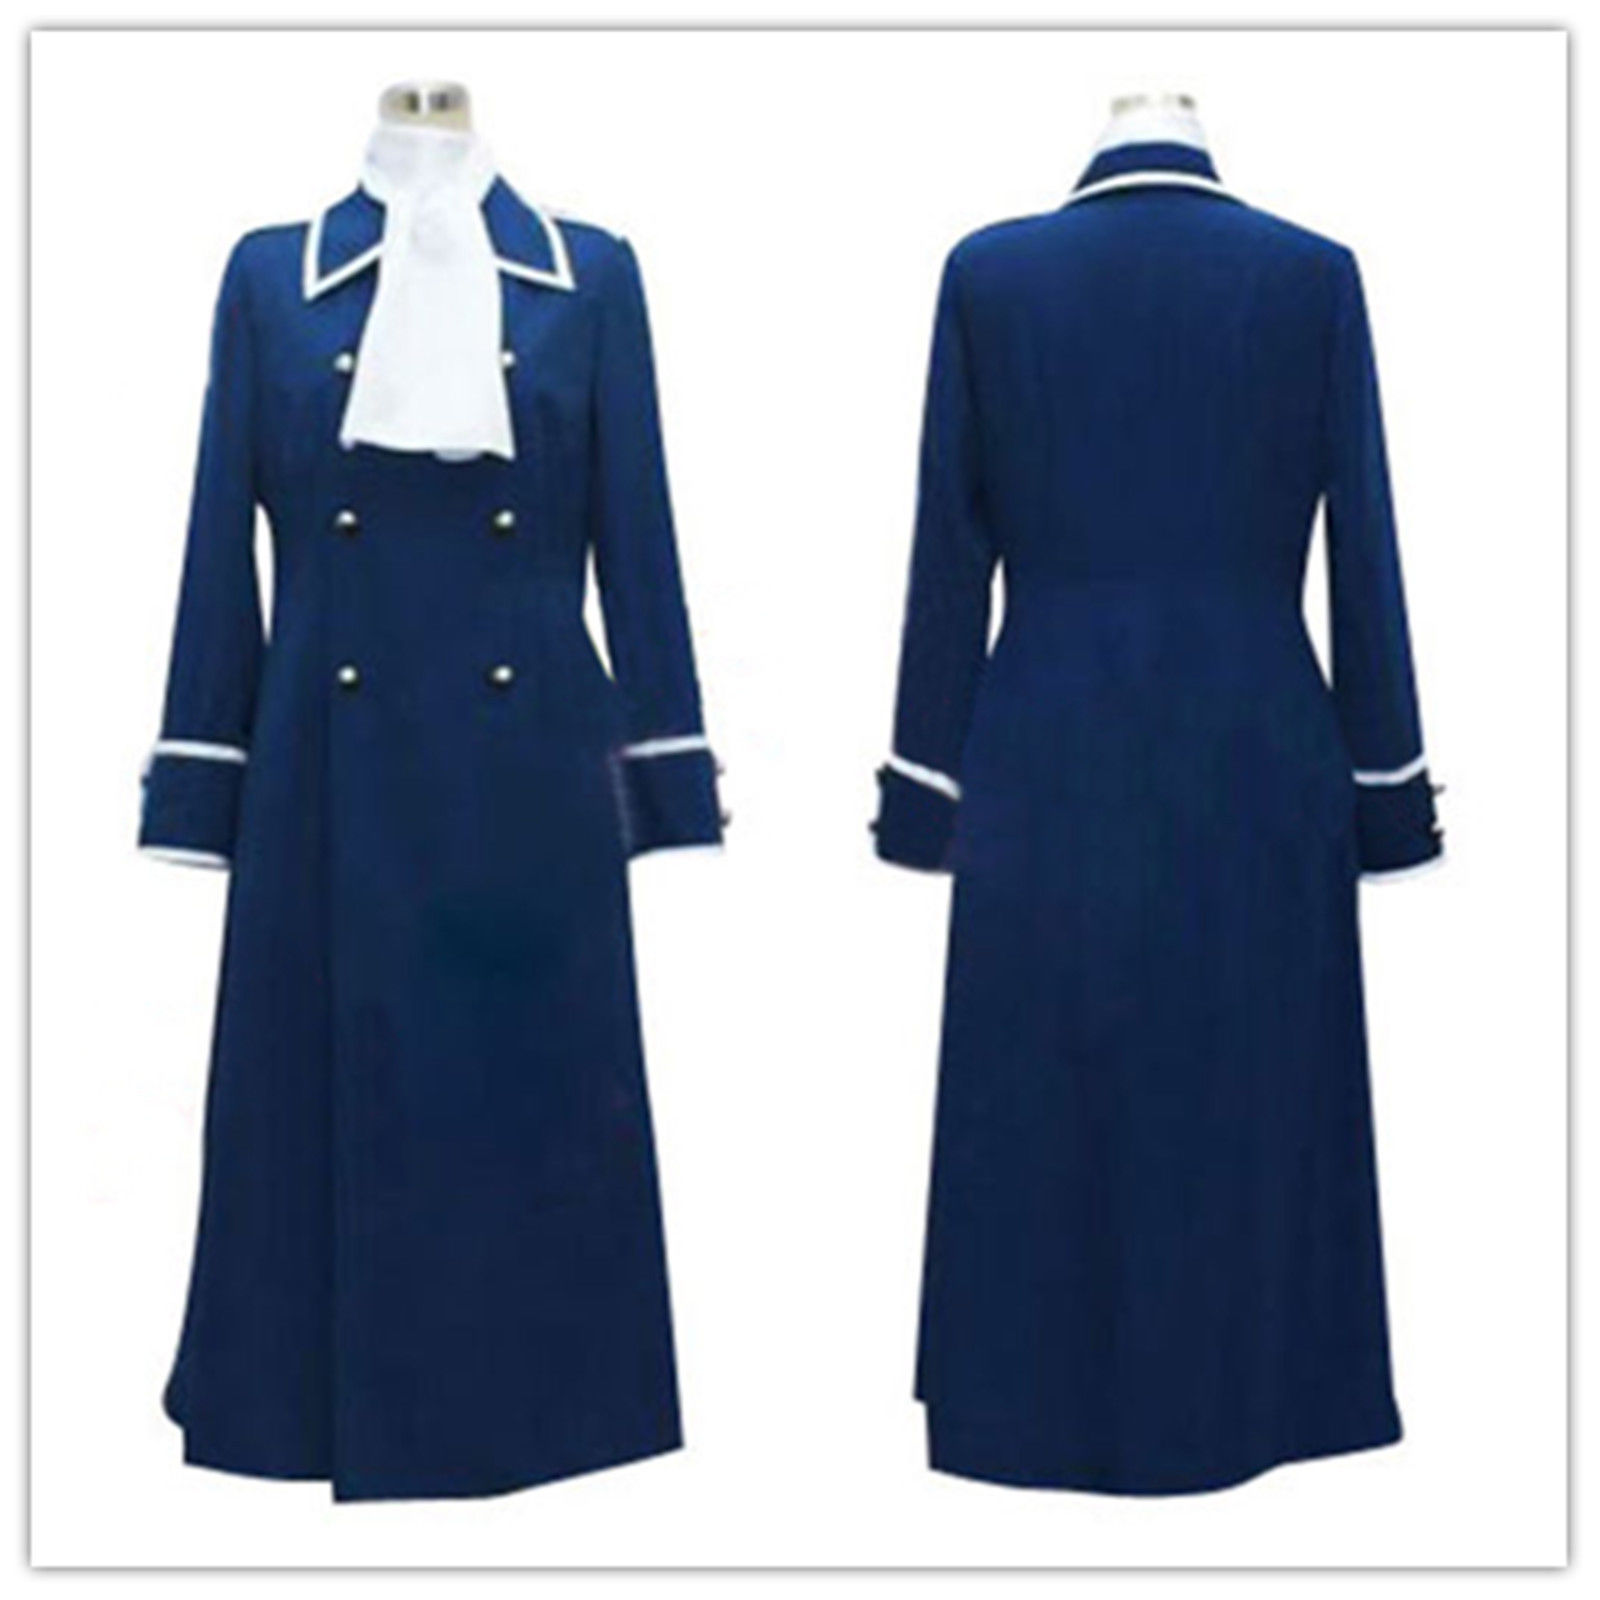 Cheap Best Cosplay Costumes For Men Find Best Cosplay Costumes For